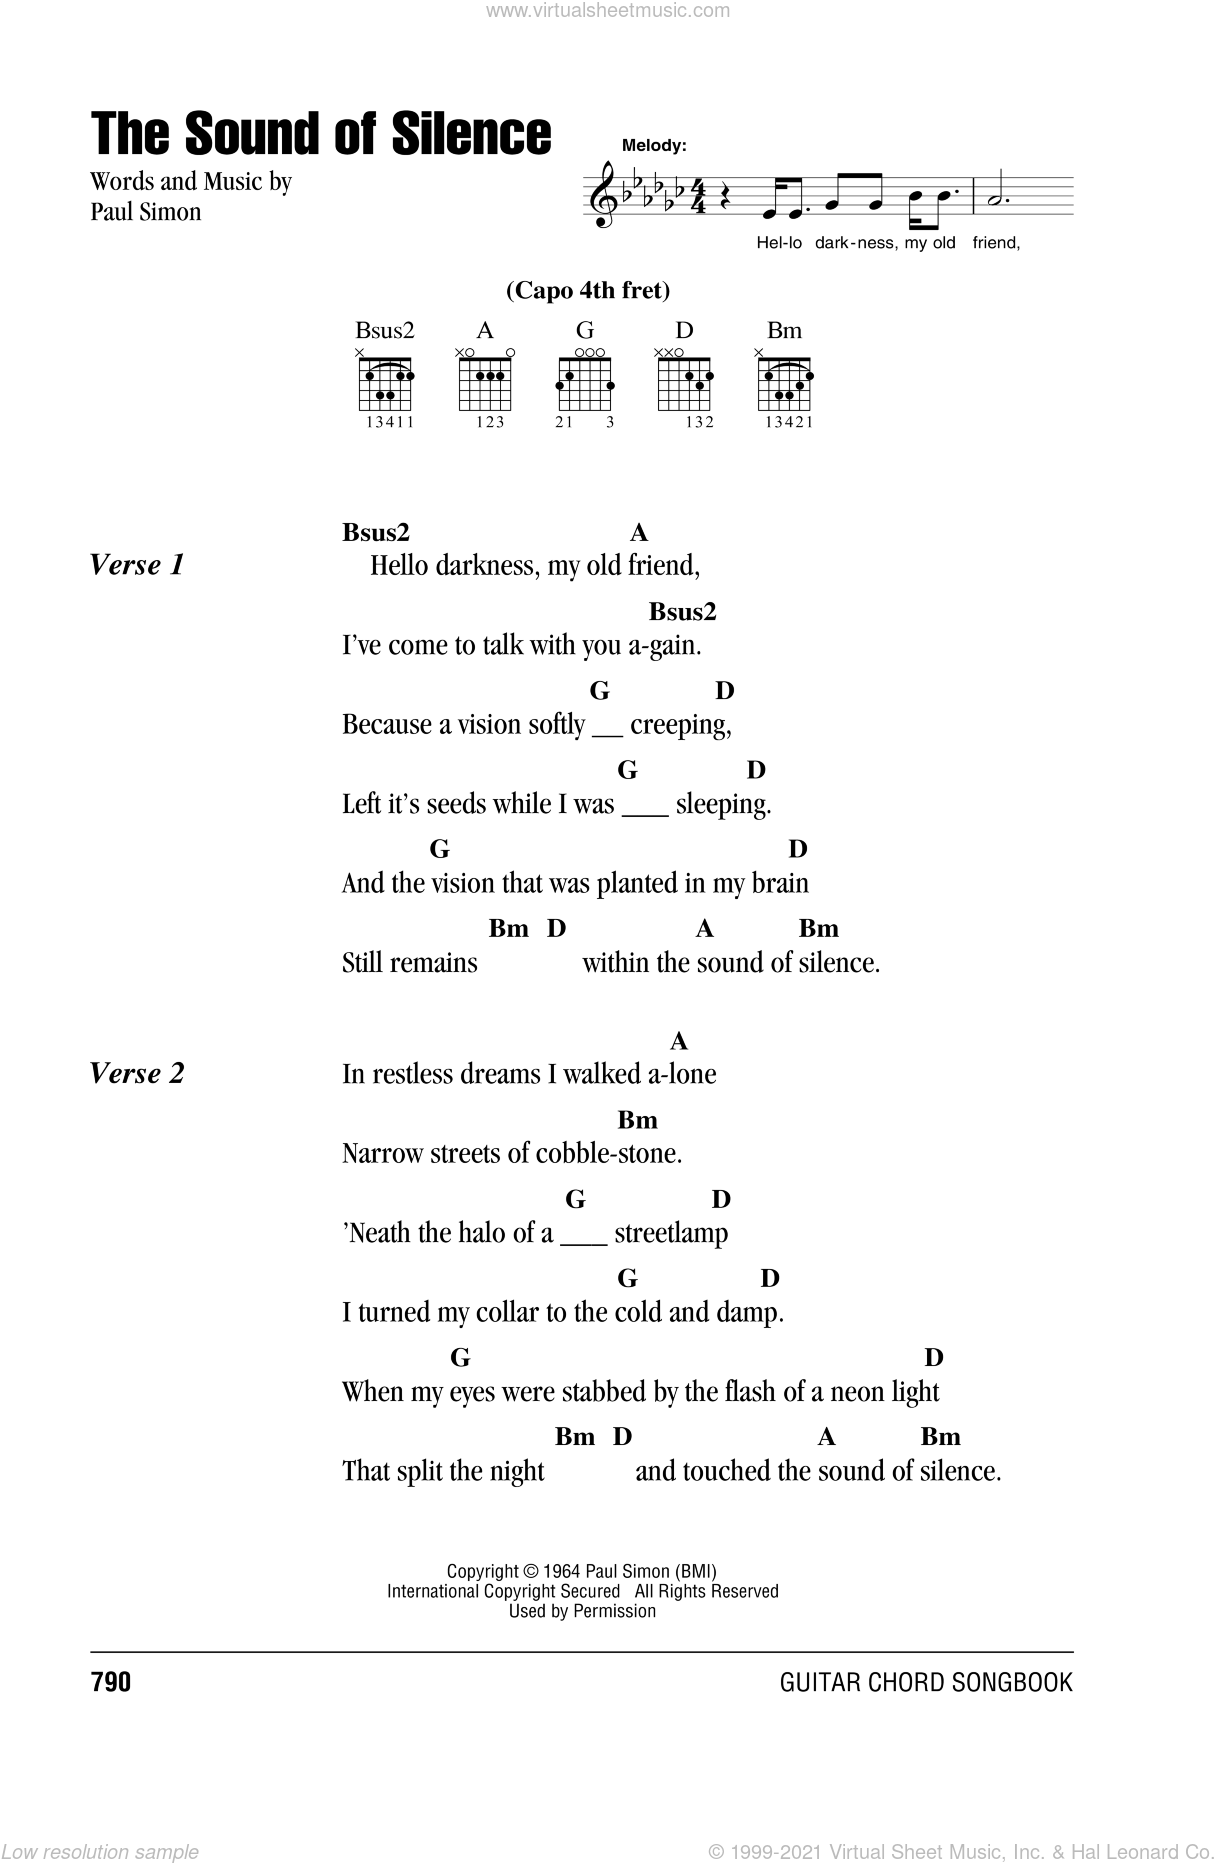 The Sound Of Silence sheet music for guitar (chords, lyrics, melody) by Paul Simon